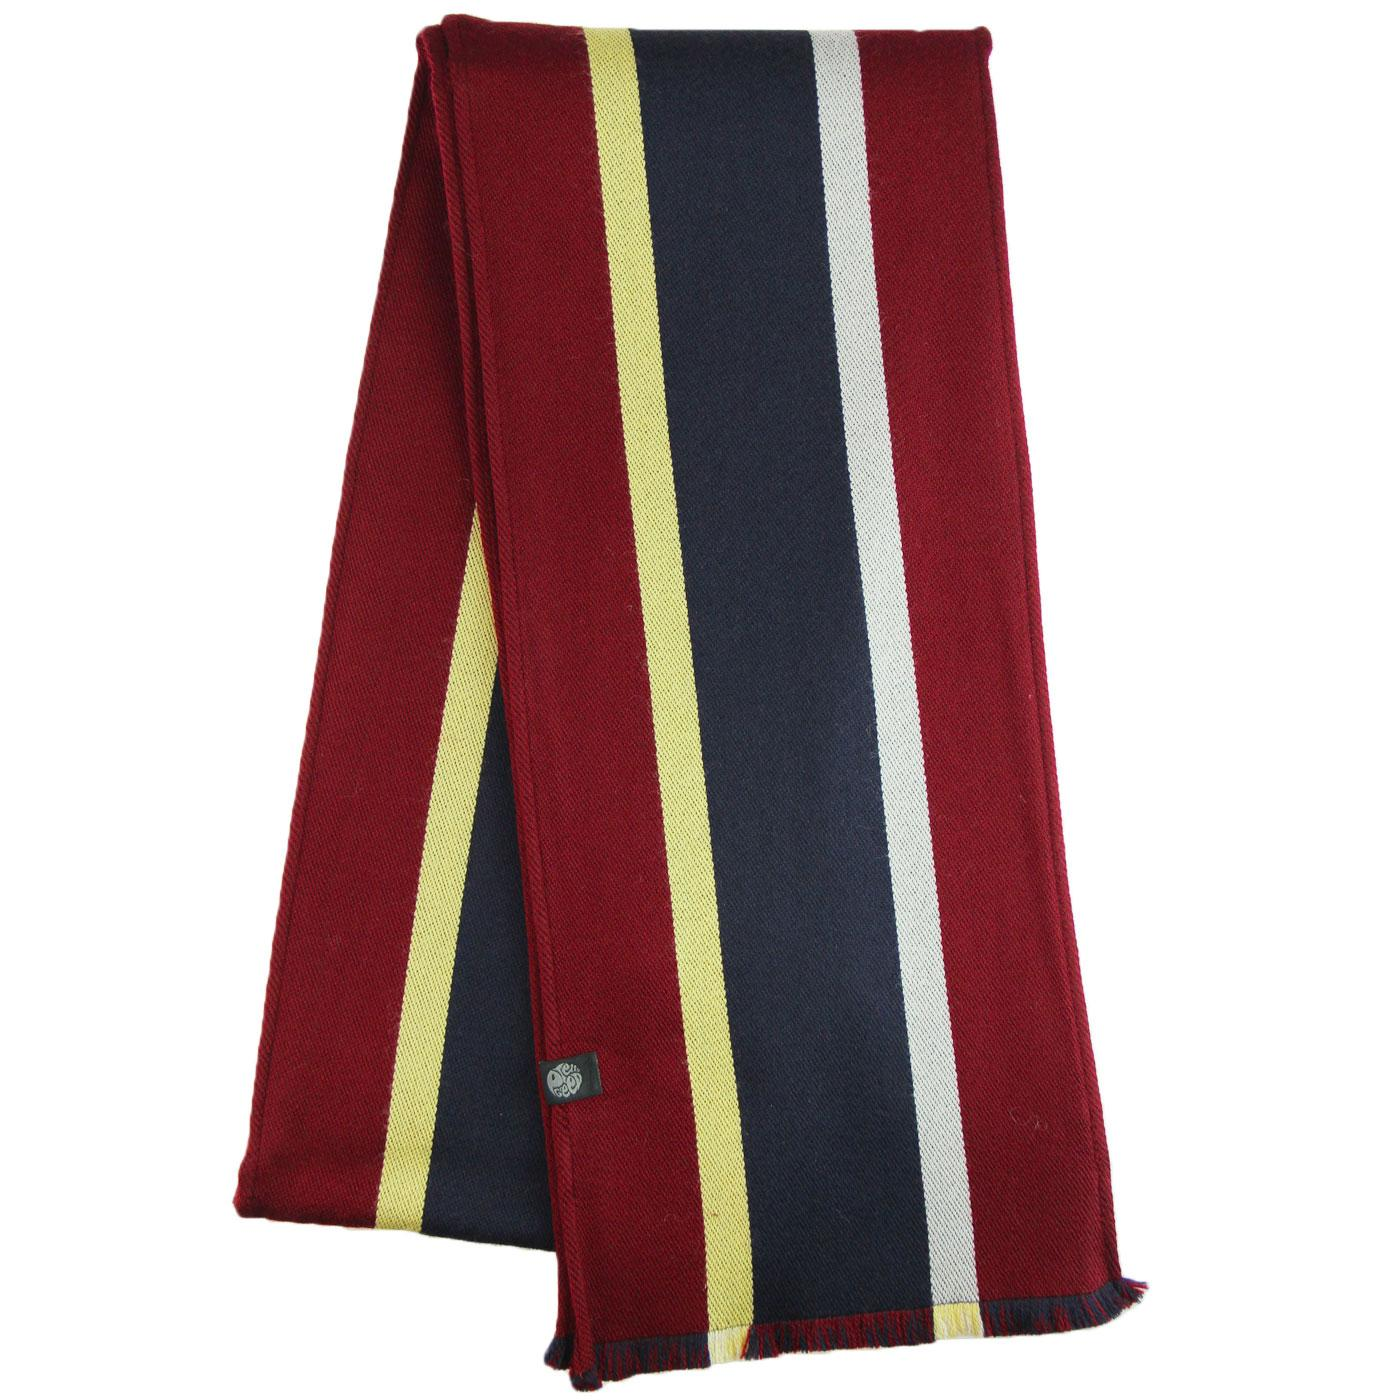 PRETTY GREEN Retro Mod Stripe College Scarf NAVY